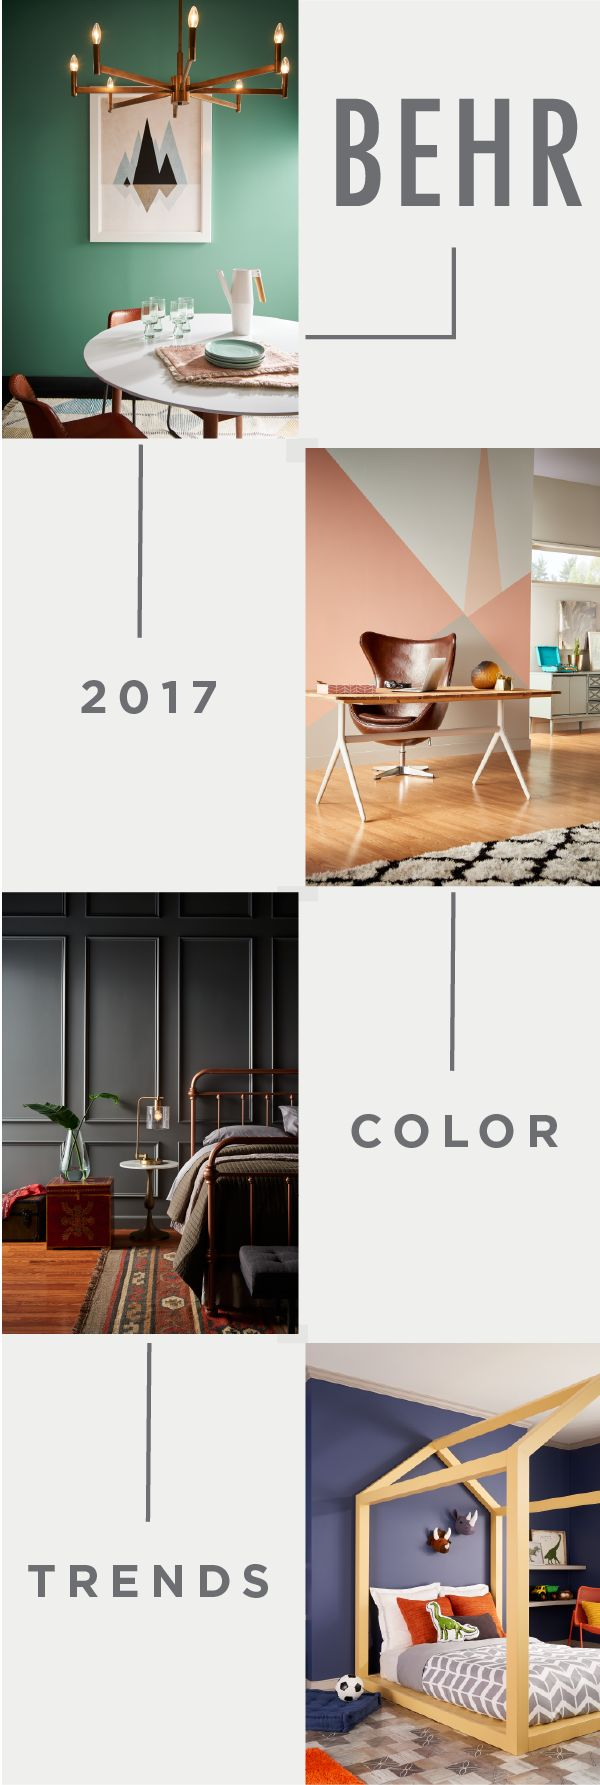 Learn About Behr S 2017 Color Trends And See Images That Will Help Inspire Your Interior Design Projects This Year